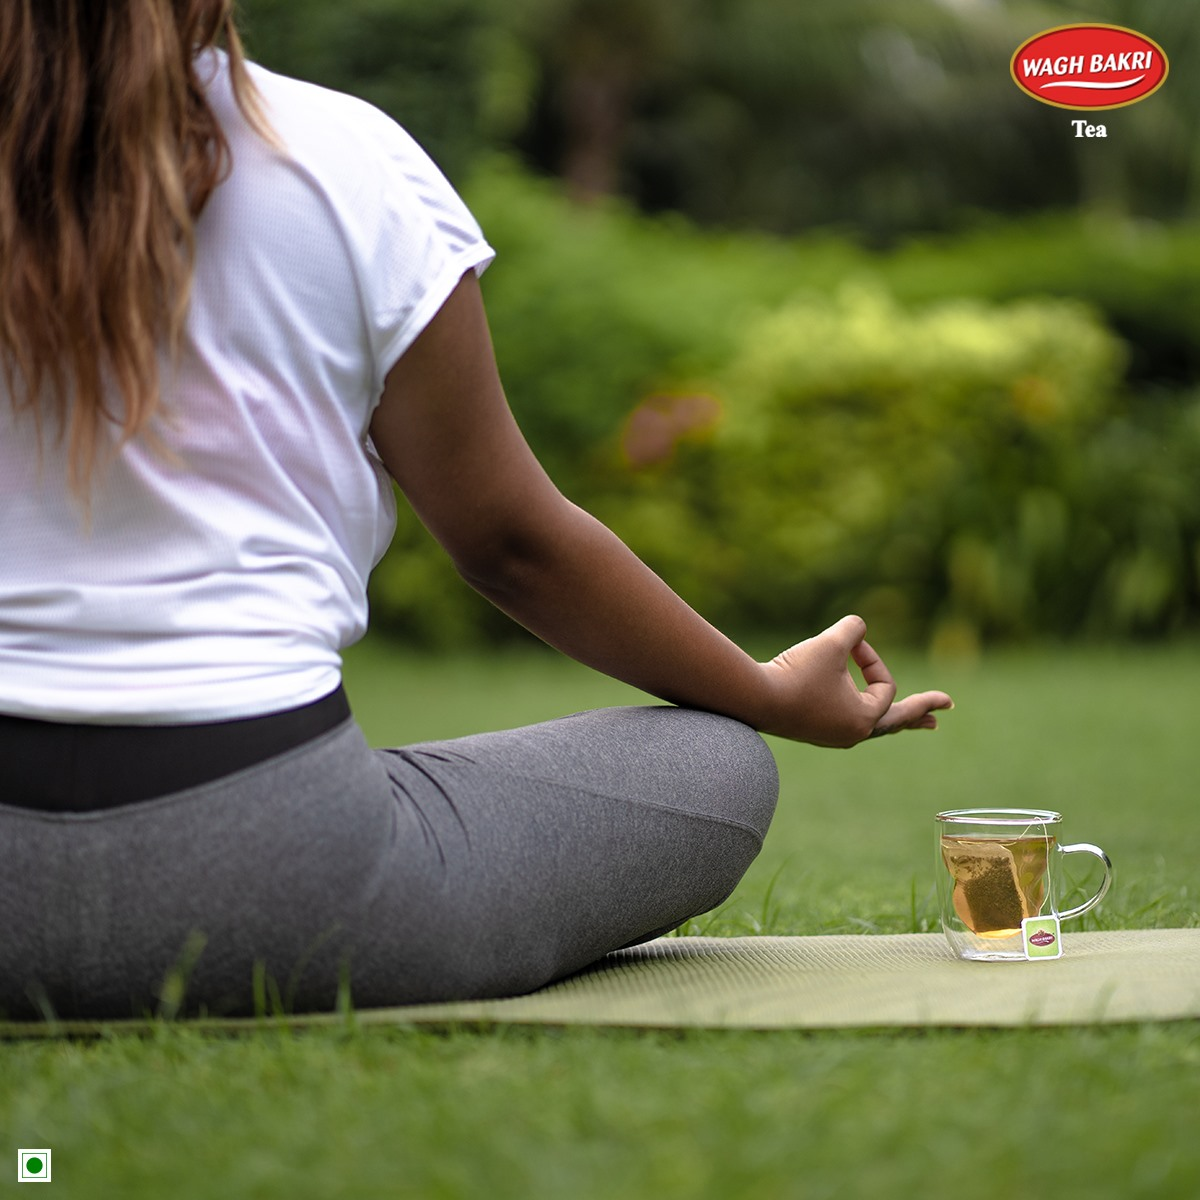 Celebrate your mornings with a cup of good health and freshness